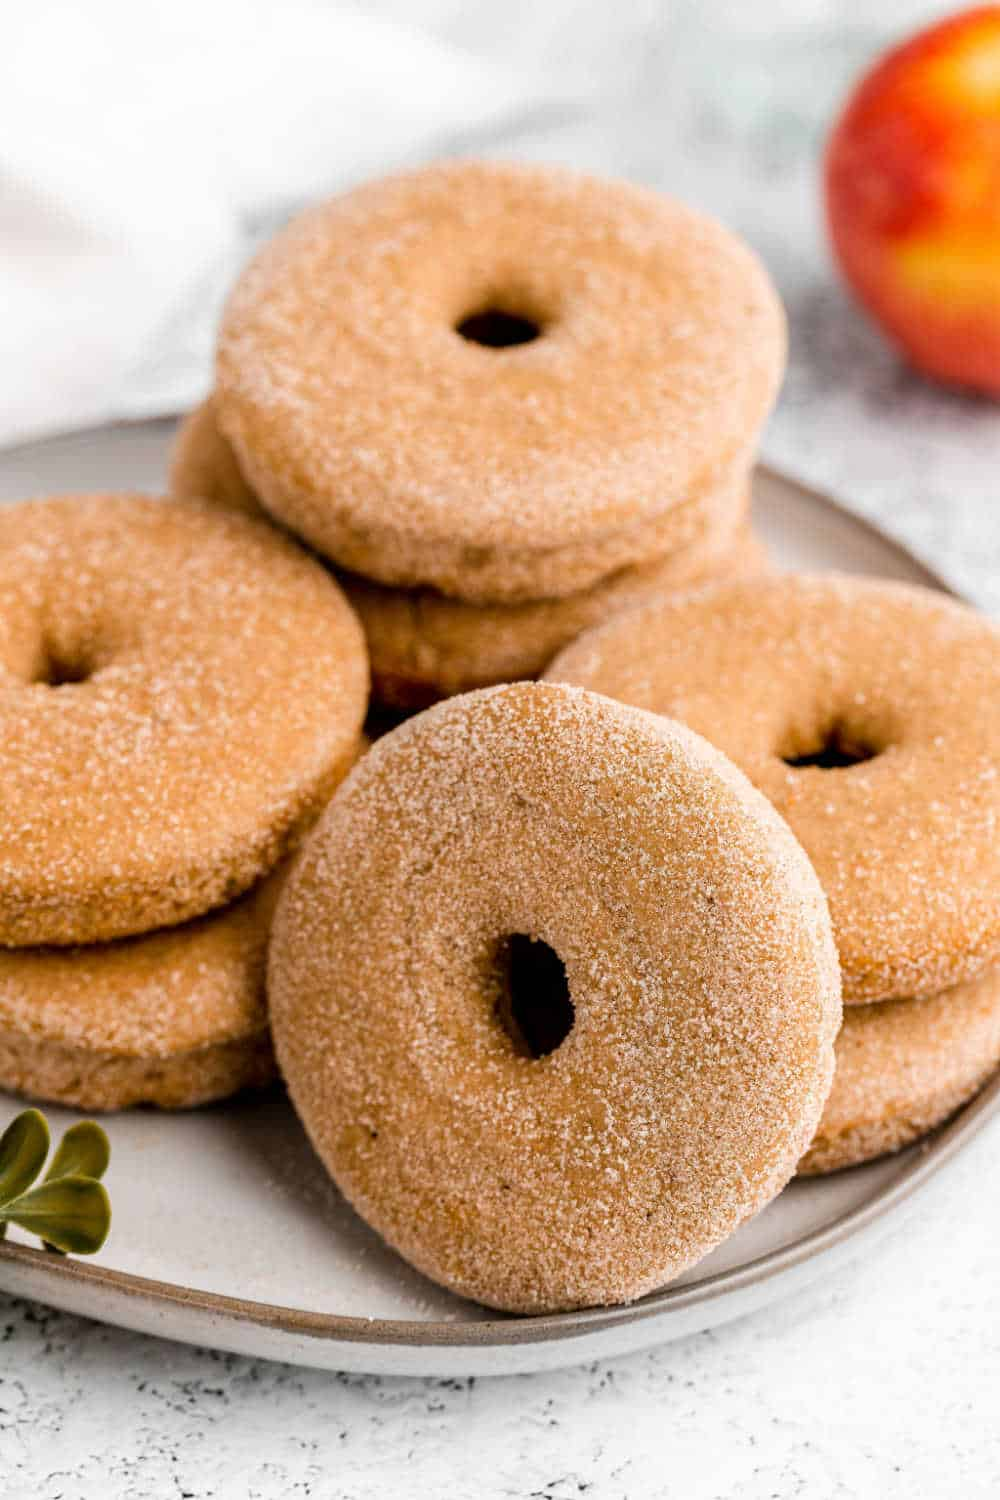 baked apple cider donuts on a plate